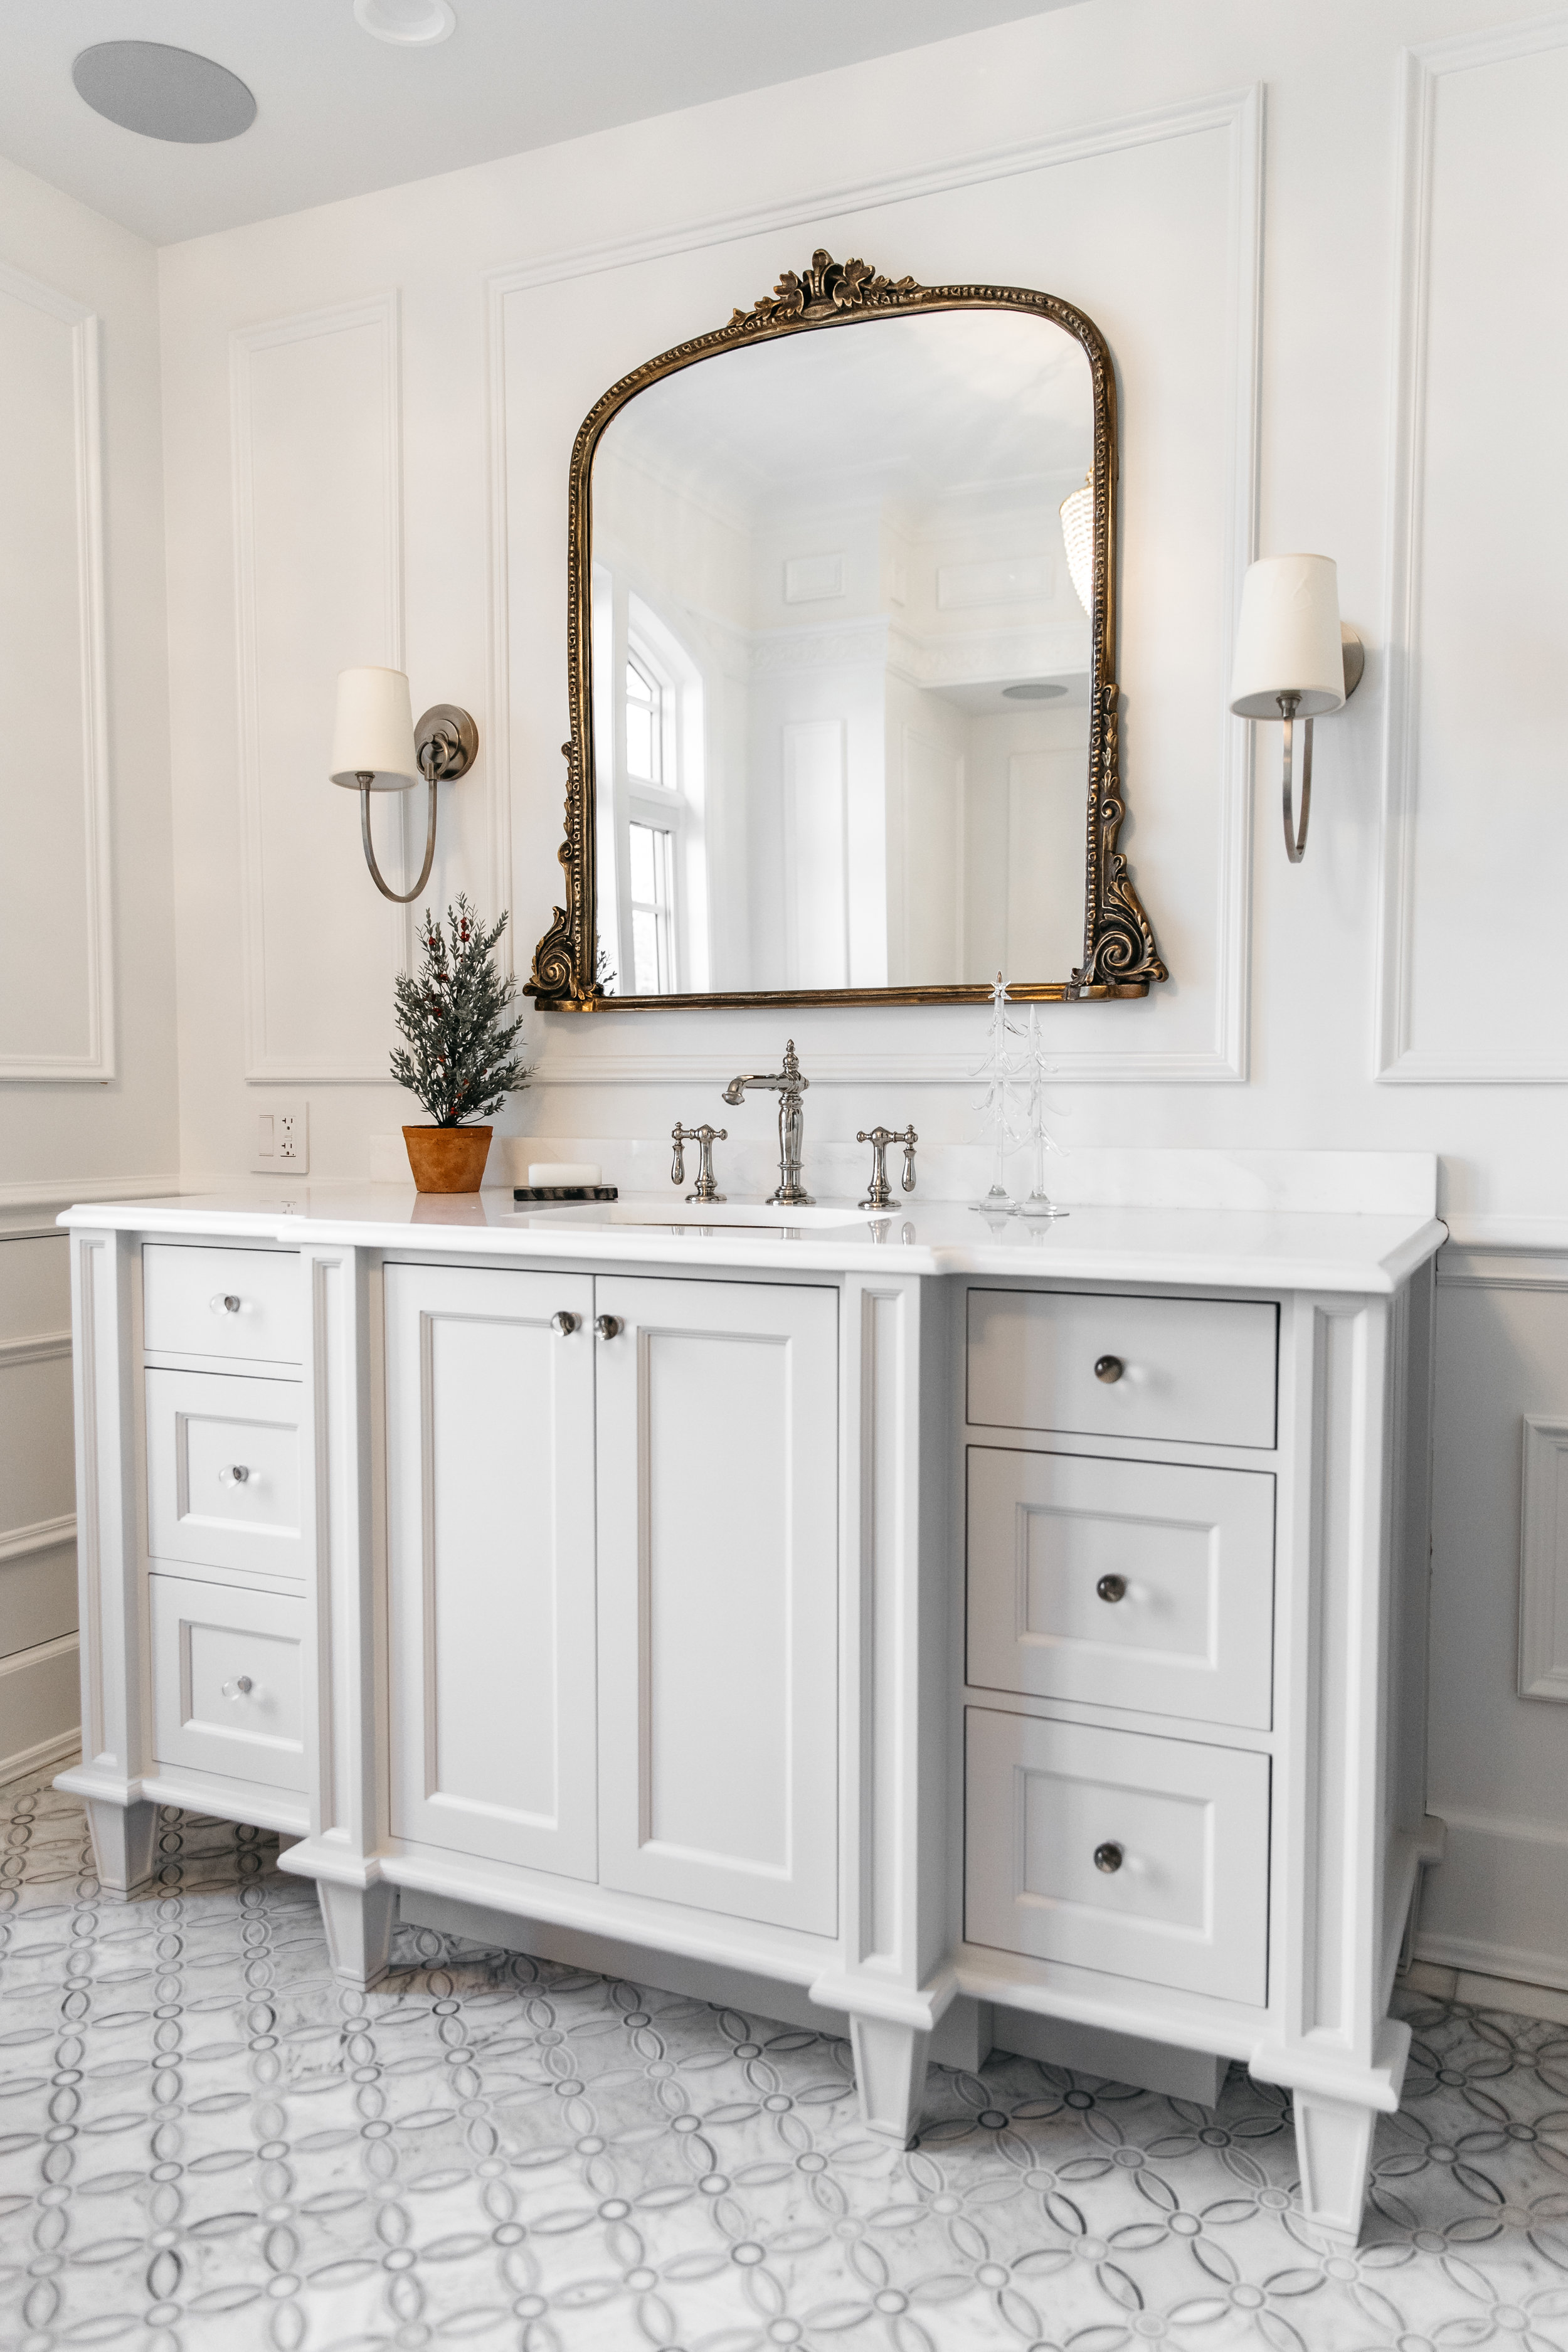 - Adding a festive faux tree to your bathroom vanity is a subtle way to add holiday flare.